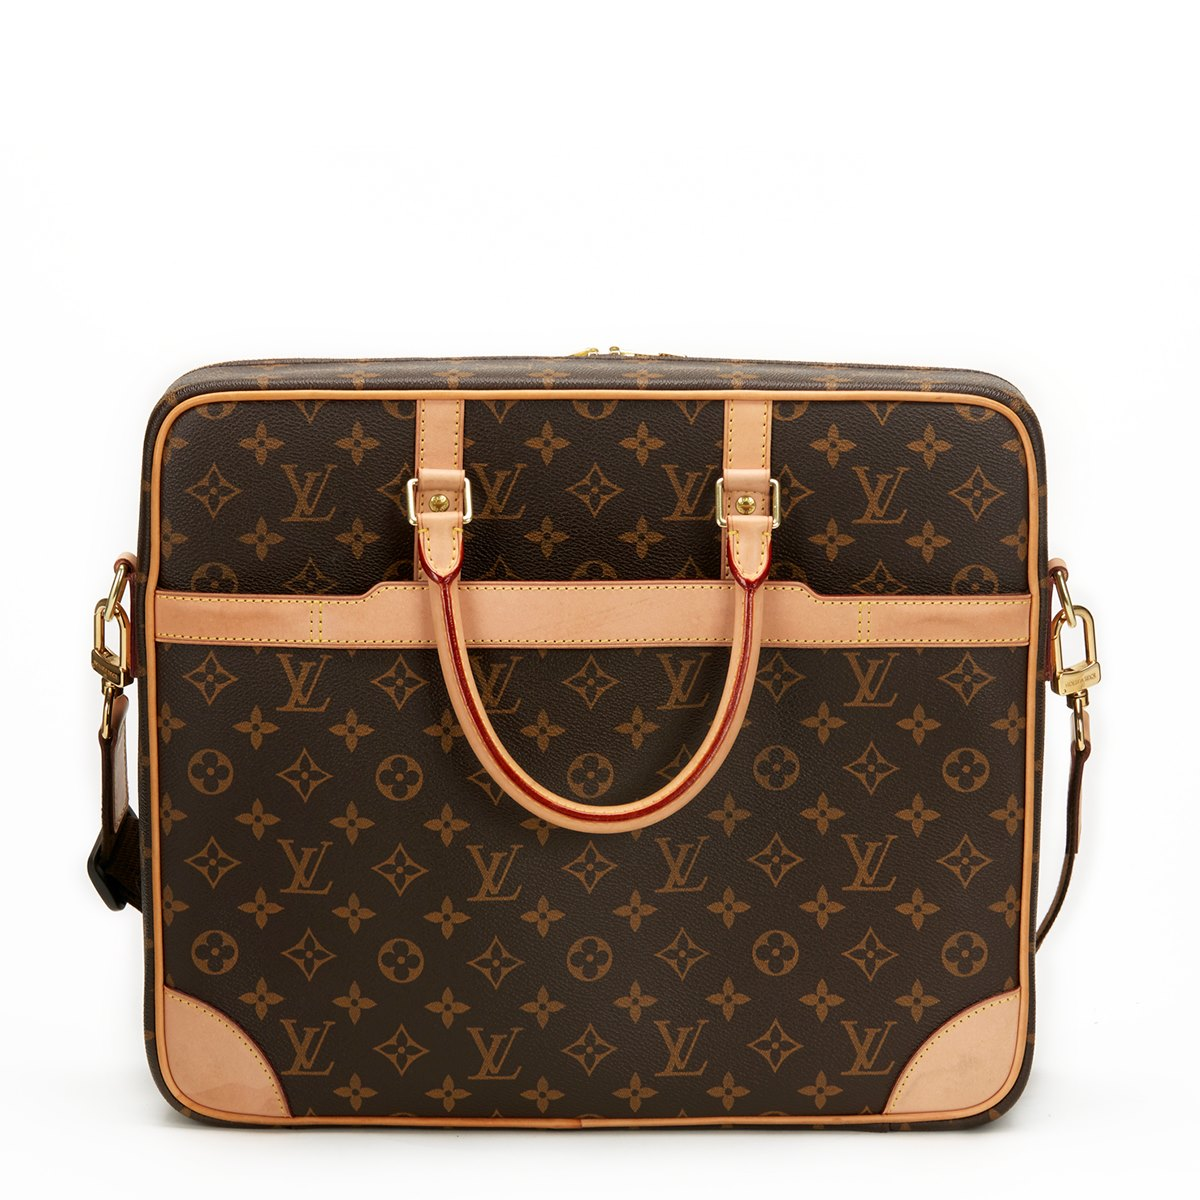 louis vuitton cupertino laptop bag 2011 cb065 second hand handbags. Black Bedroom Furniture Sets. Home Design Ideas